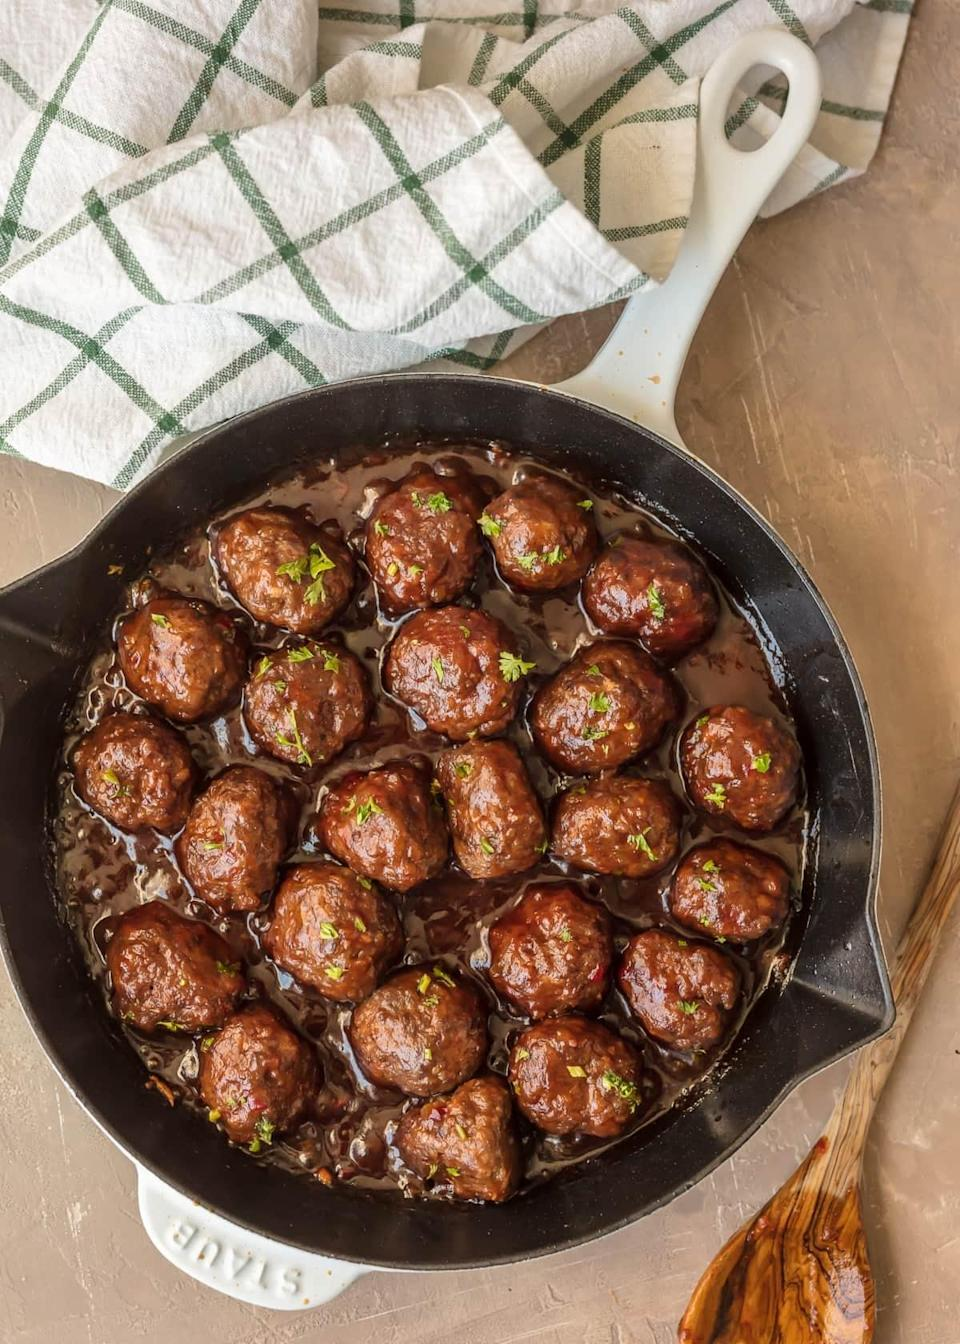 """<p>Cooked in a cranberry pepper jelly sauce, these flavorful meatballs are a perfect harmony of all the best flavors.</p> <p><strong>Get the recipe:</strong> <a href=""""https://www.thecookierookie.com/cranberry-cocktail-meatballs/"""" class=""""link rapid-noclick-resp"""" rel=""""nofollow noopener"""" target=""""_blank"""" data-ylk=""""slk:sweet and spicy cranberry cocktail meatballs"""">sweet and spicy cranberry cocktail meatballs</a></p>"""